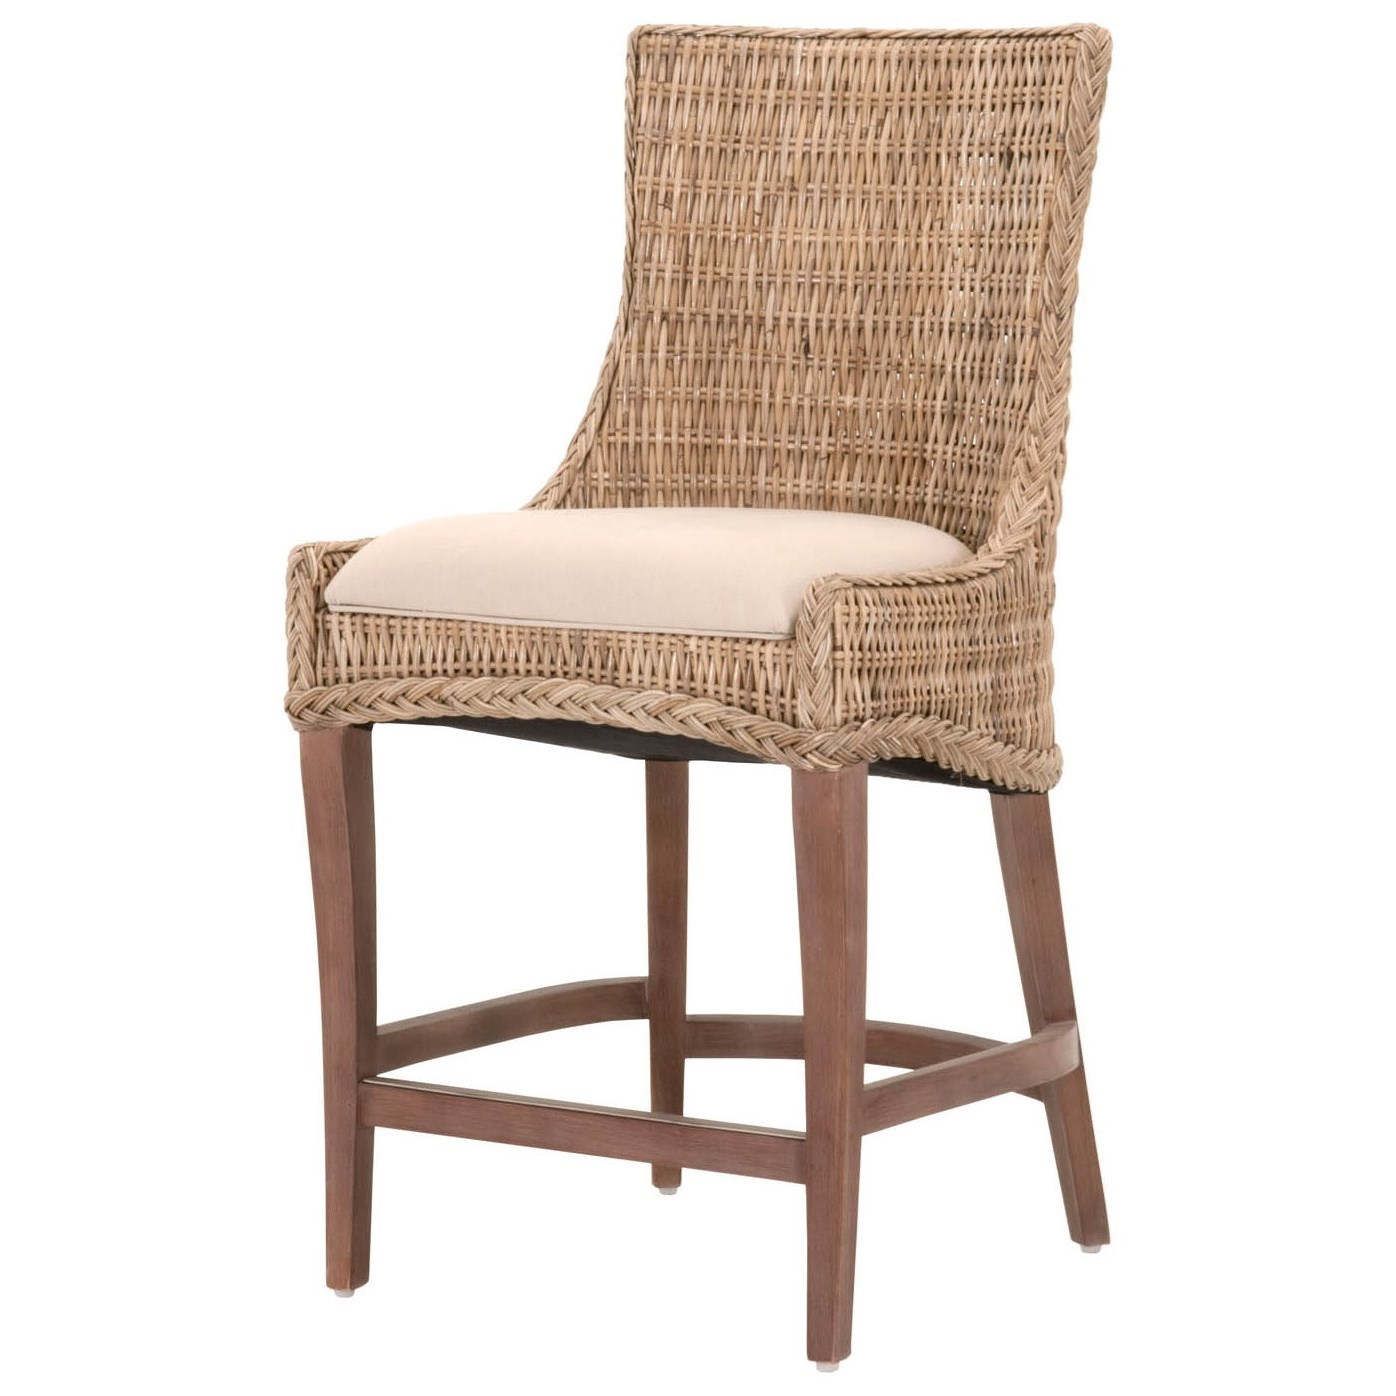 Orient express furniture wicker greco woven counter stool for Furniture express